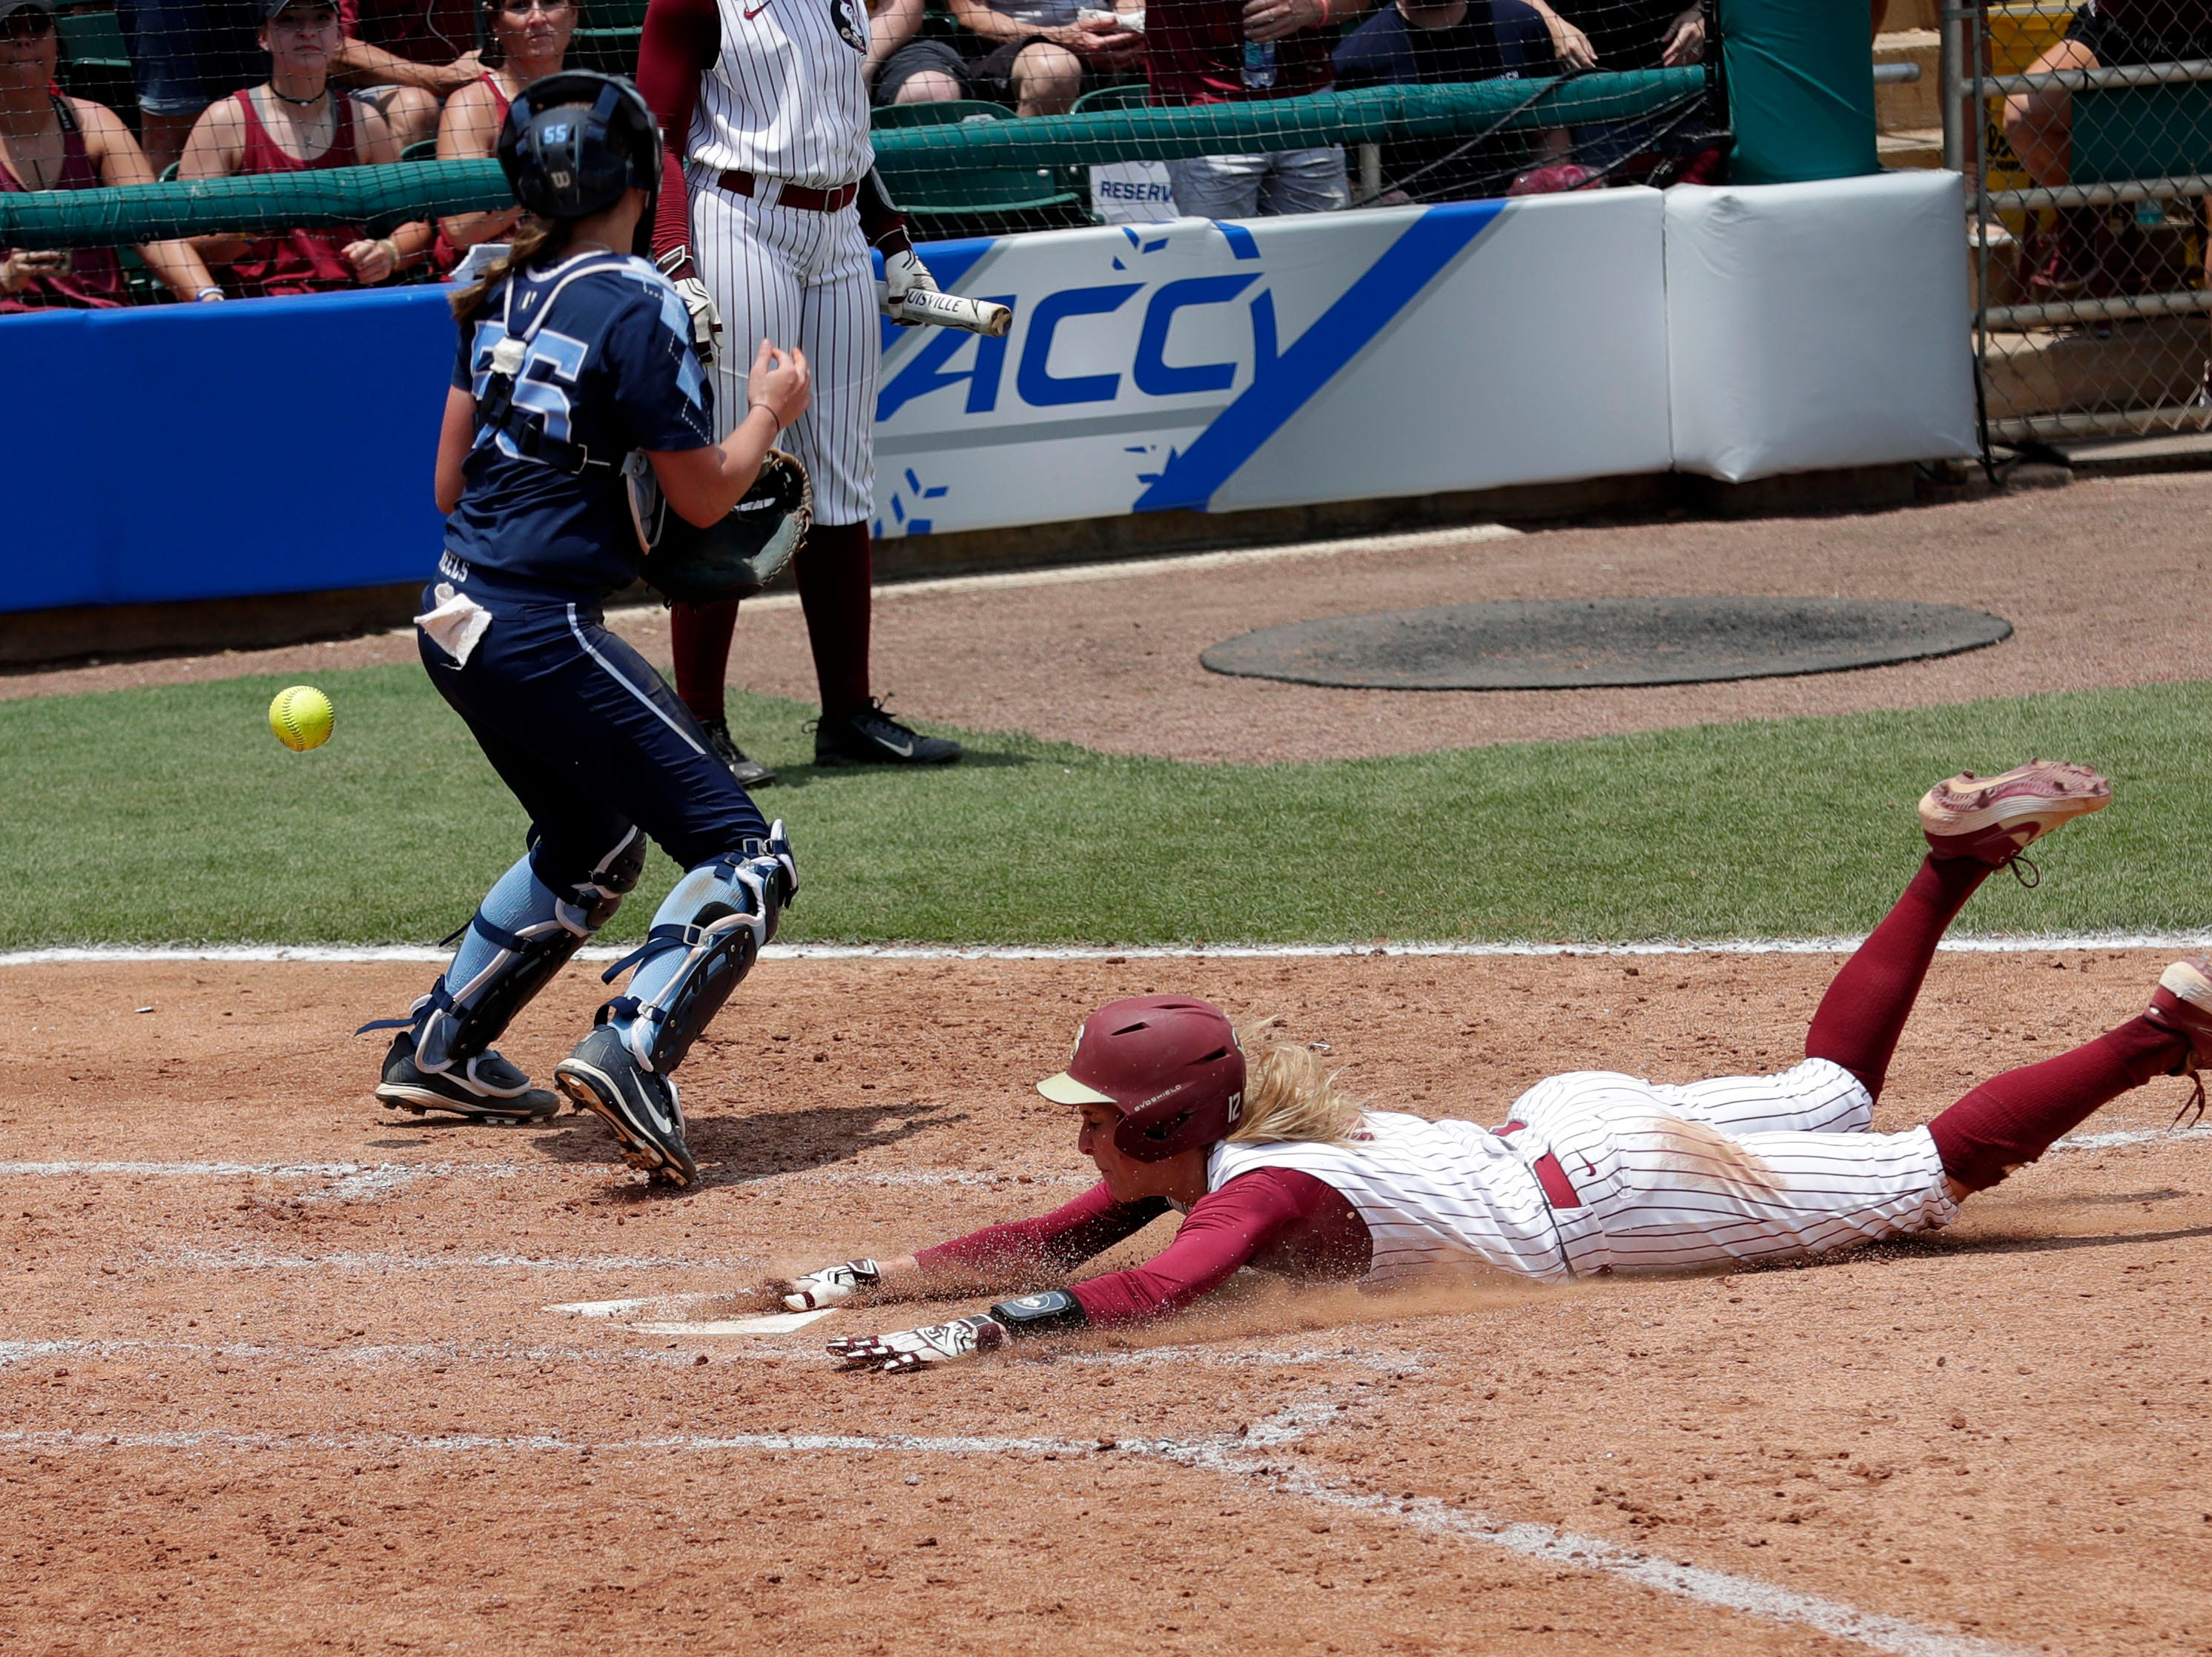 Florida State Seminoles infielder Carsyn Gordon (12) slides into home plate to score. The Florida State Seminoles host the UNC Tar Heels for the ACC Softball Tournament finals Saturday, May 11, 2019.